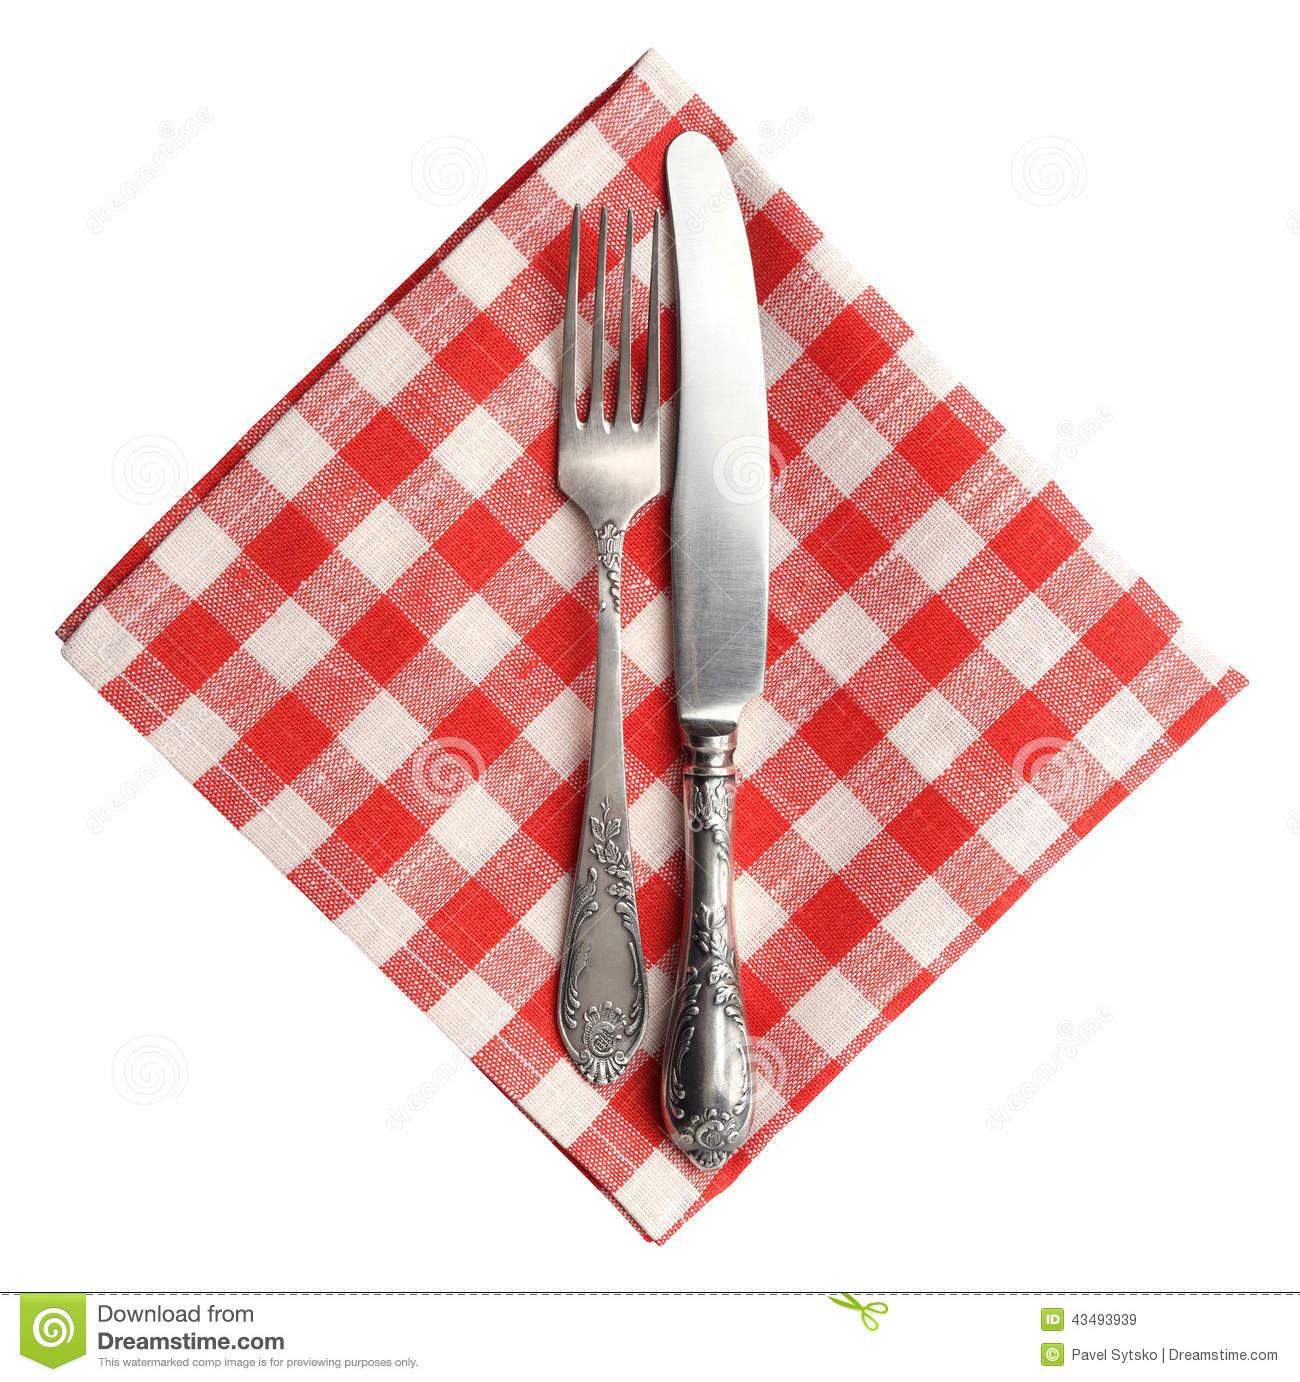 Vintage Knife And Fork On Red Plaid Linen Napkin Isolated